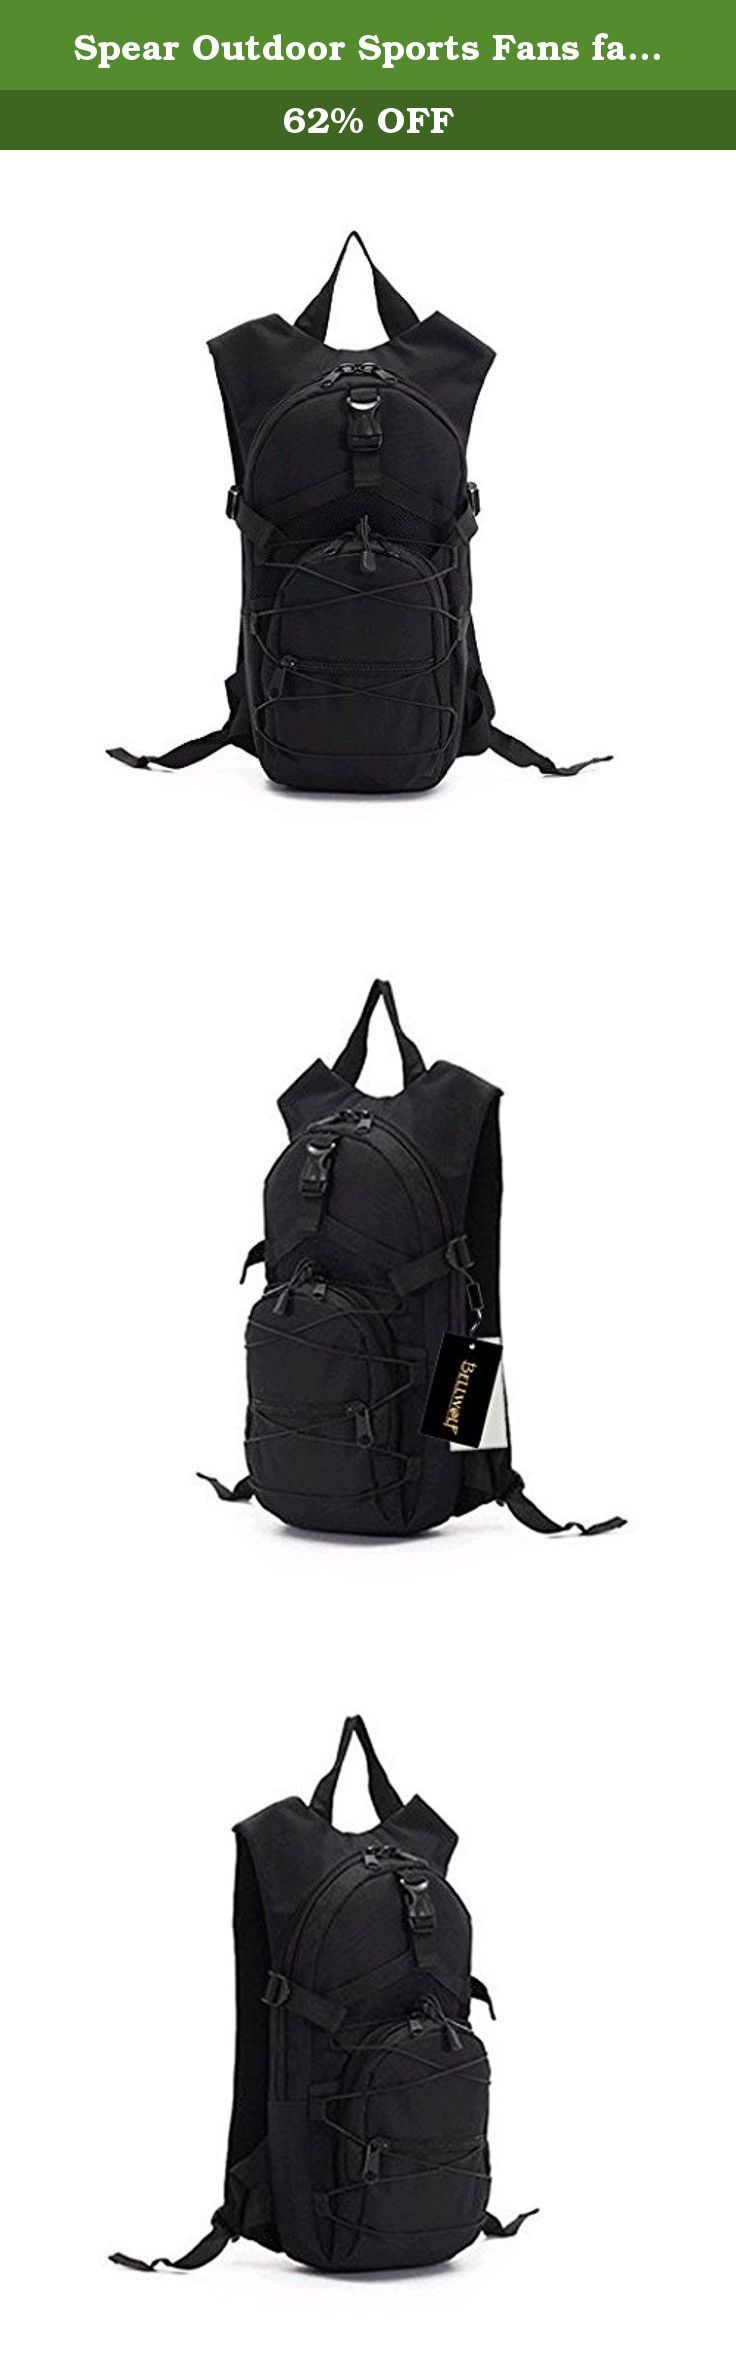 Spear Outdoor Sports Fans fashion 006 cycling knapsack and outdoor leisure backpack hiking bag student bag with waterproof cloth Oxford black style( high 47*, width 22* thickness 8 (CM)). Spear Outdoor Sports Fans fashion 006 cycling knapsack and outdoor leisure backpack hiking bag student bag with waterproof cloth Oxford black style( high 47*, width 22* thickness 8 (CM)).